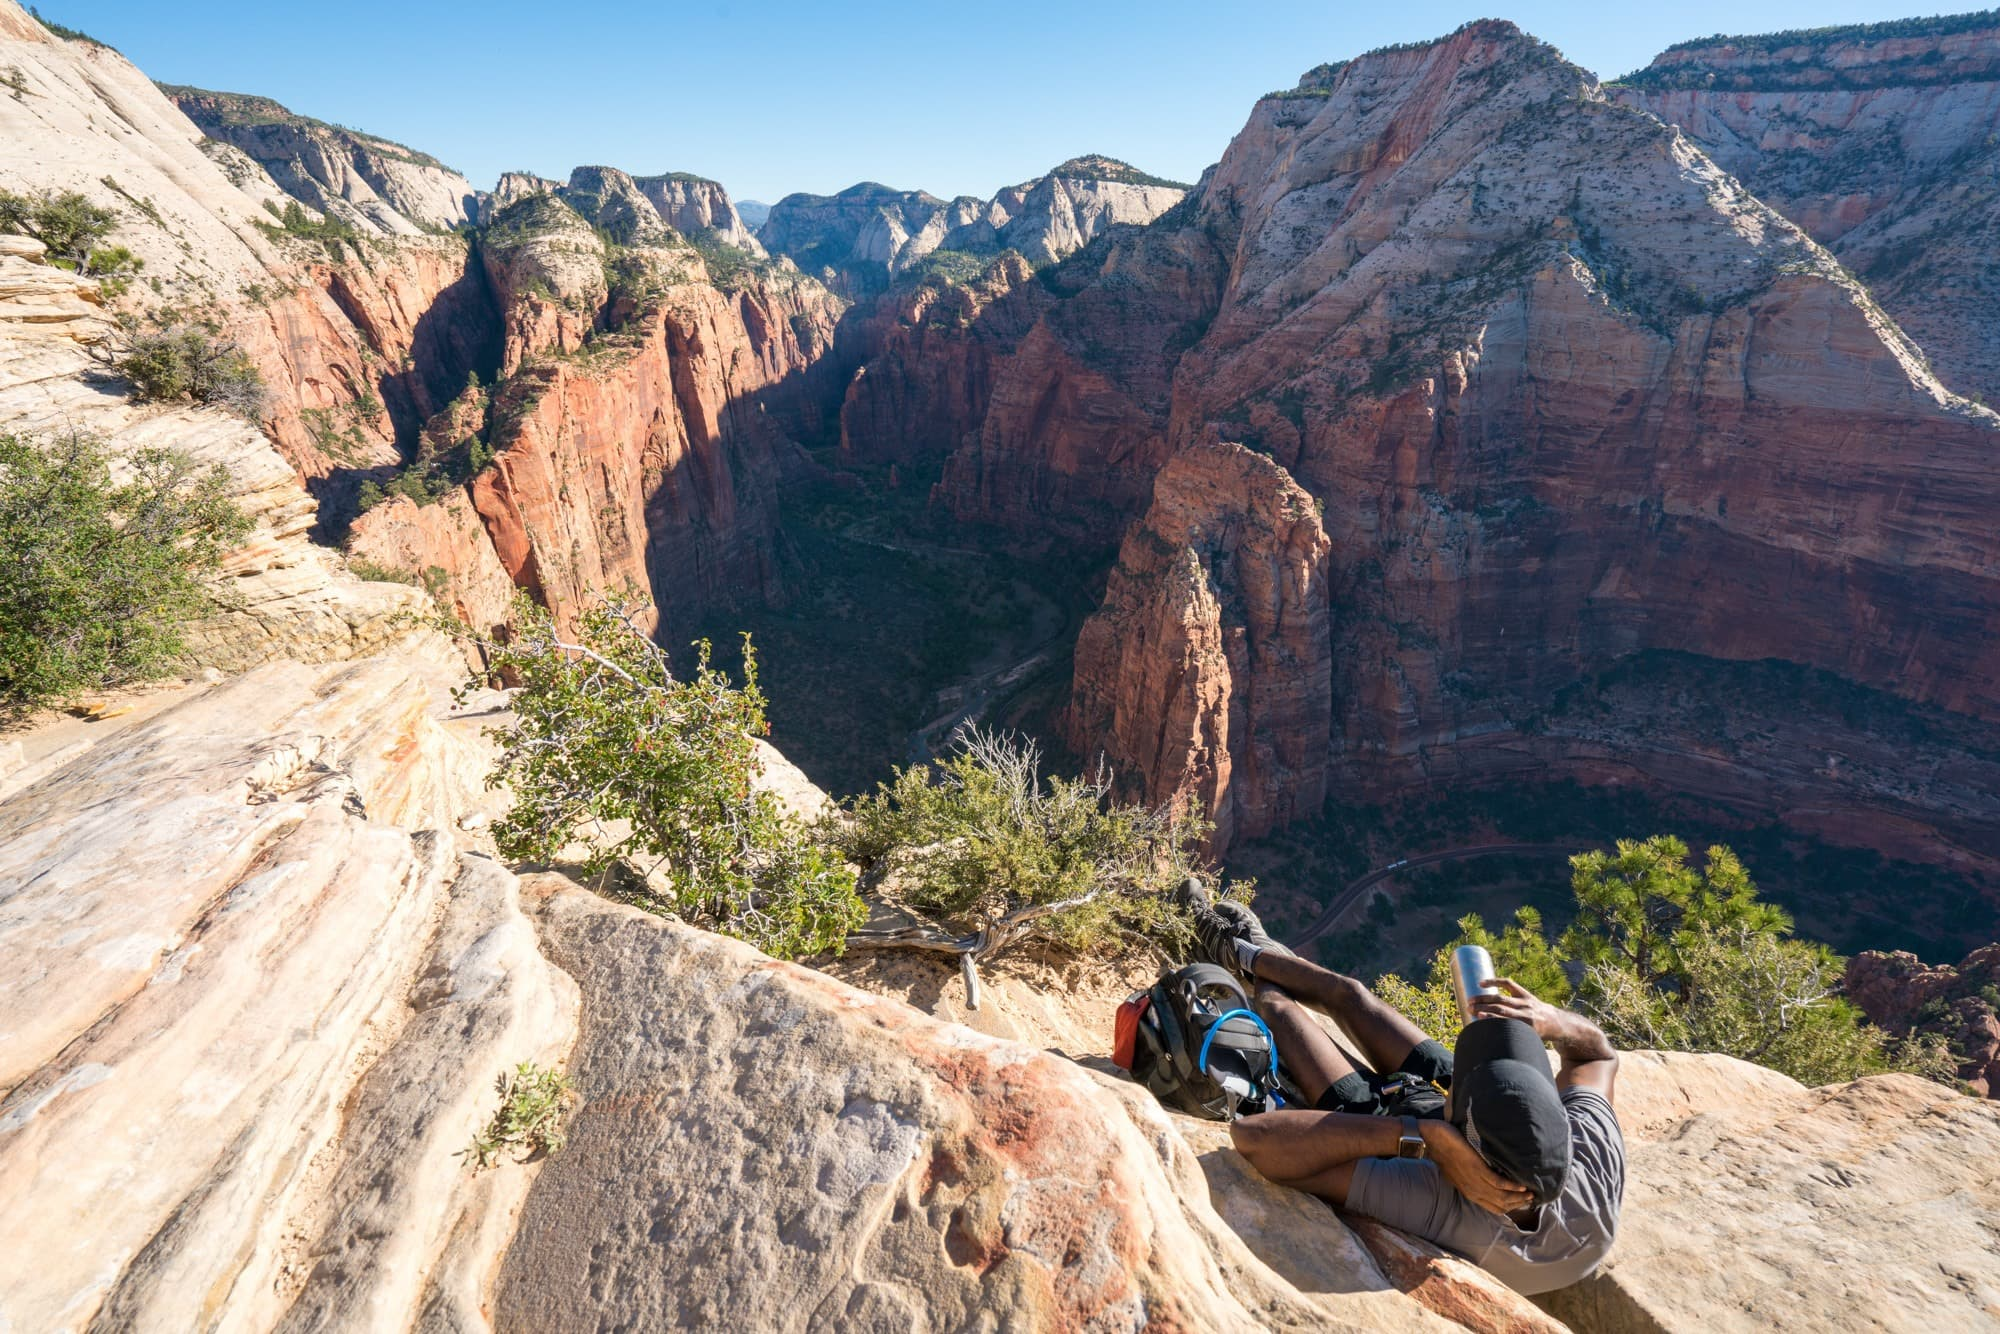 Angel's Landing /. Explore Utah National Parks in this 10-day road trip itinerary w/ the best hikes, activities & camping in Zion, Bryce, Capitol Reef, Arches & Canyonlands.